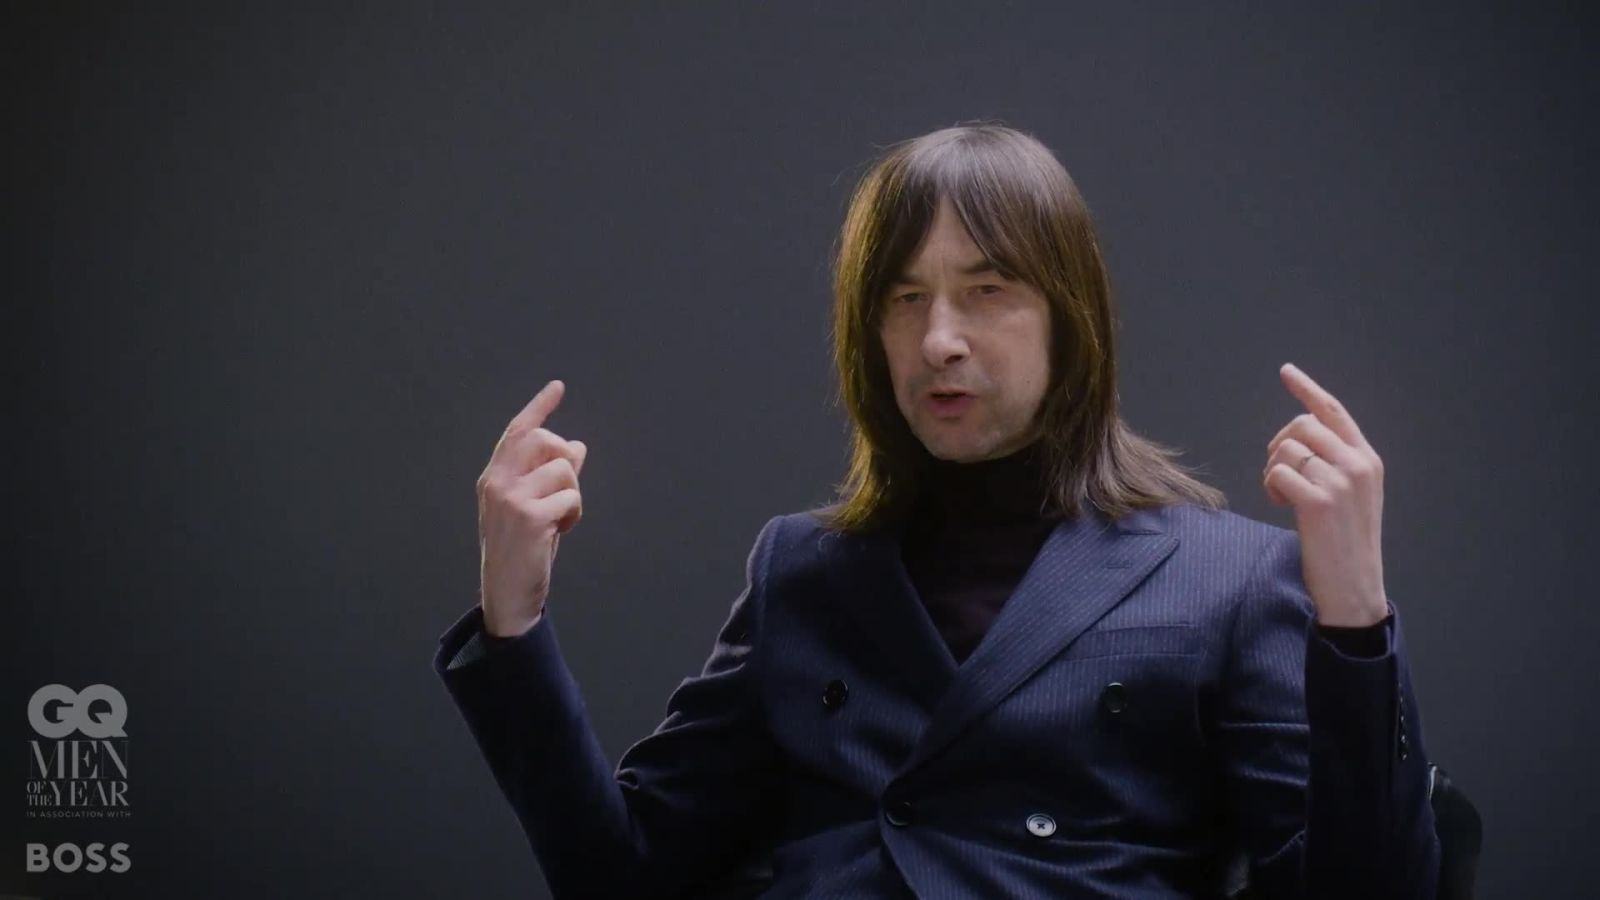 Primal Scream frontman Bobby Gillespie on rock'n'roll, politics and taking more drugs than any other band